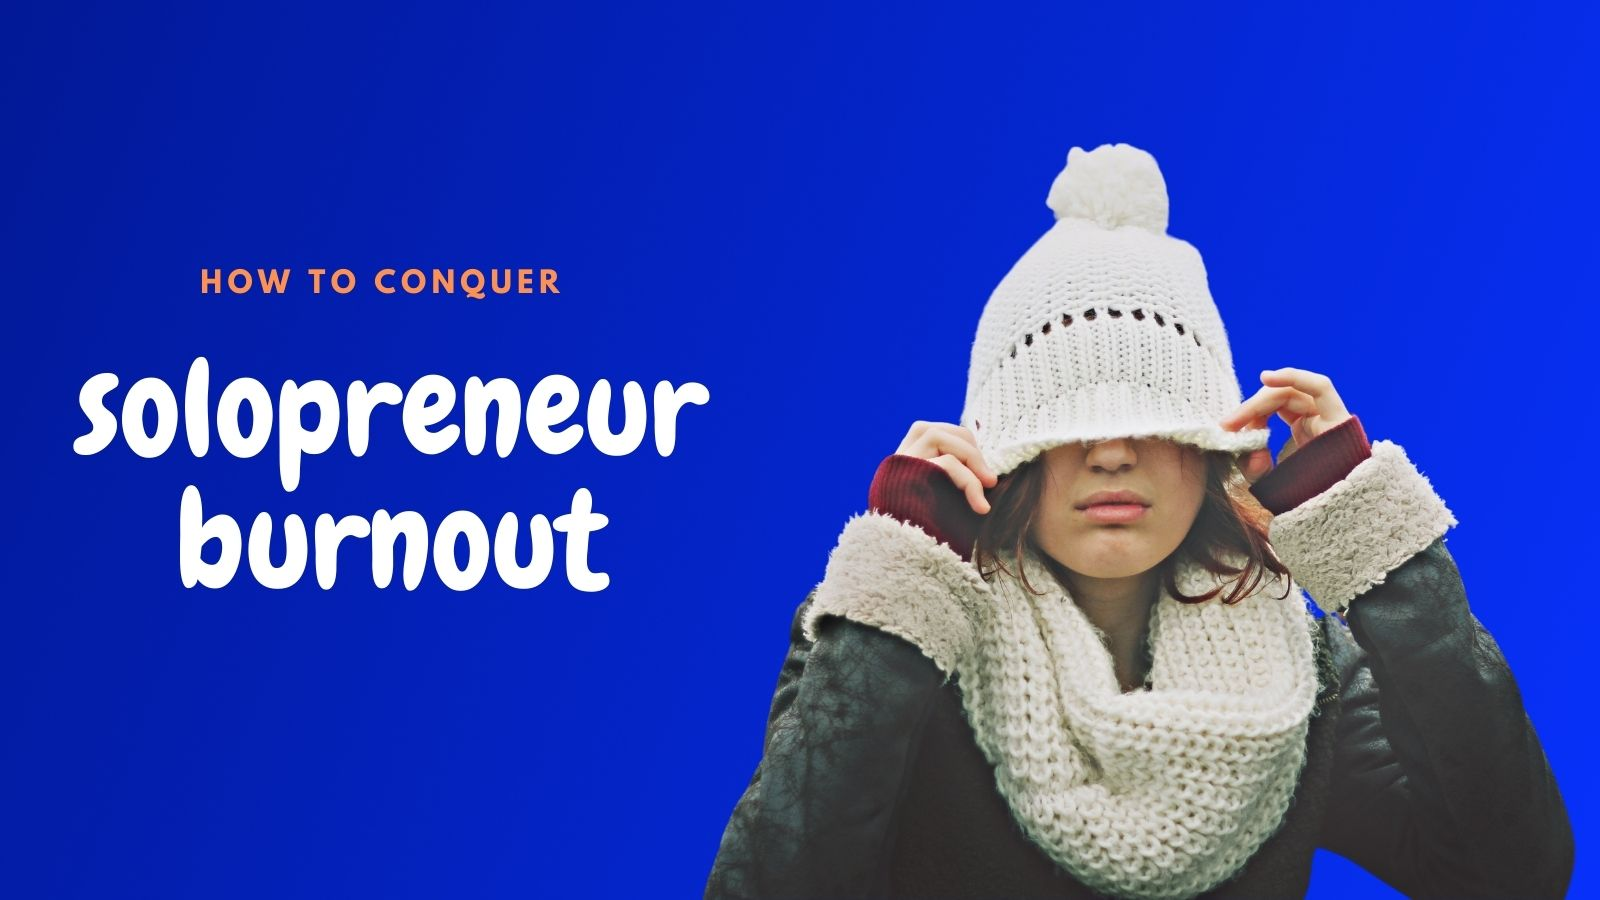 How to Conquer Solopreneur Burnout